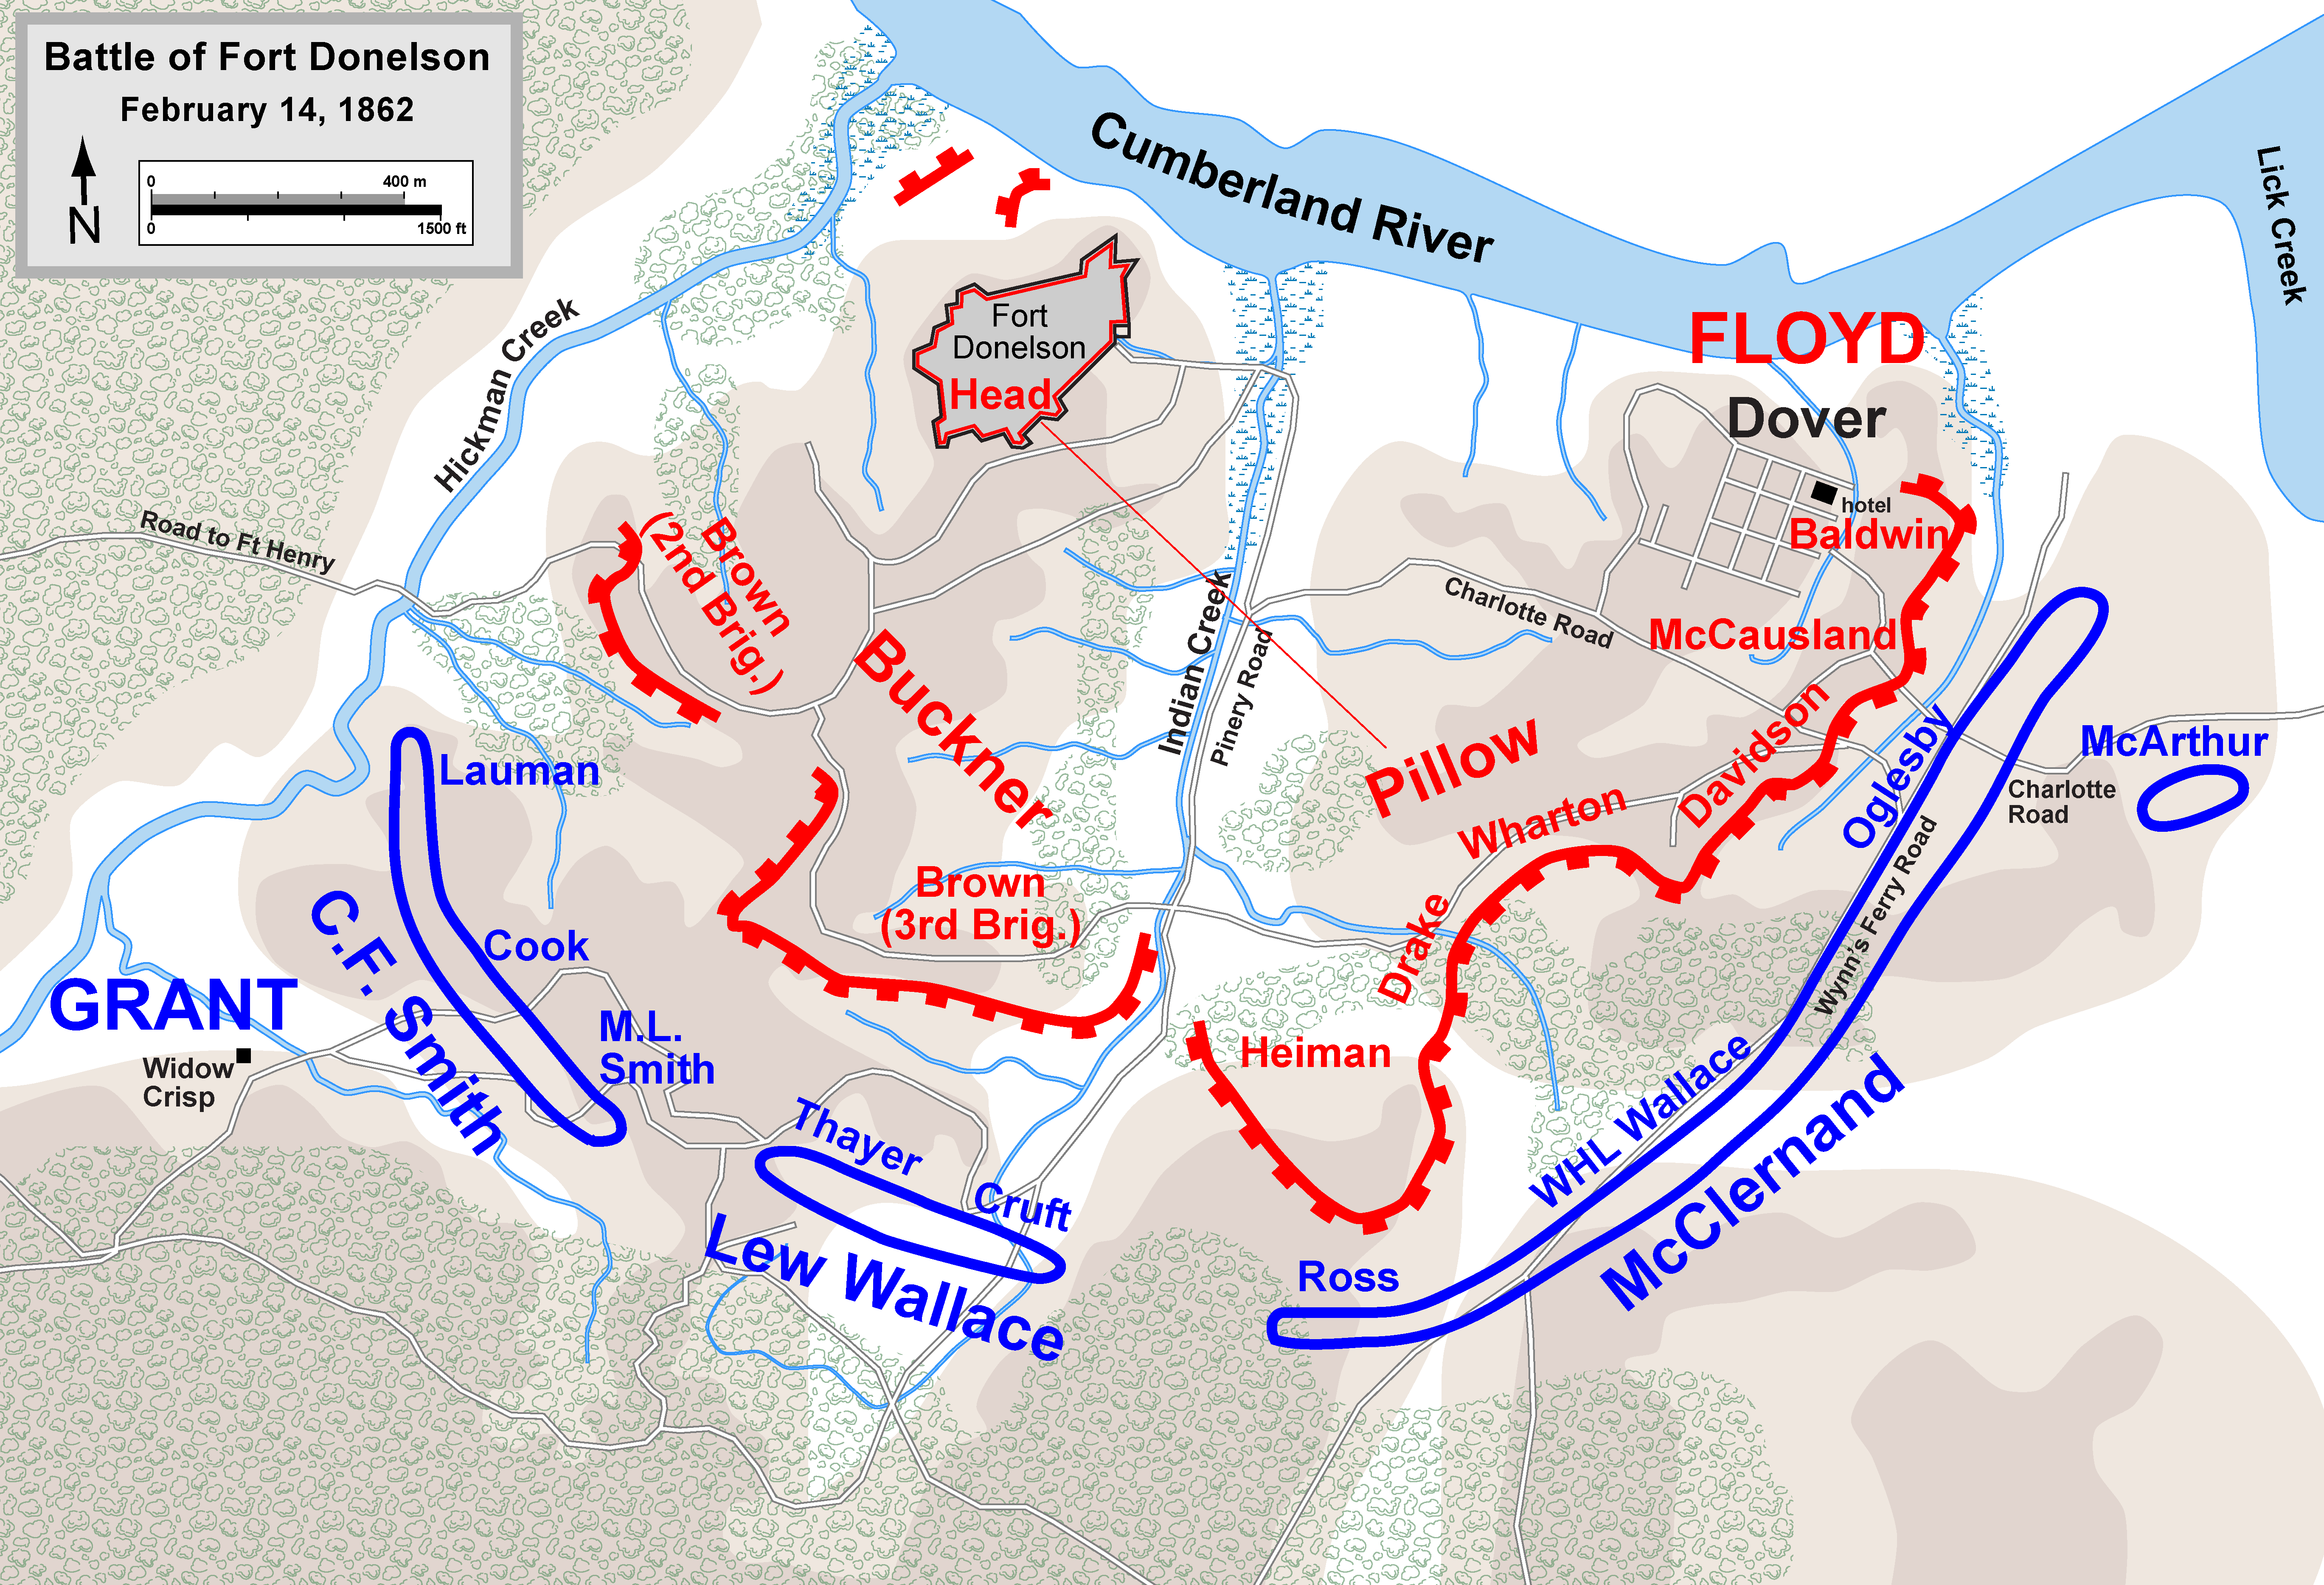 FileFort Donelson Febpng Wikimedia Commons - Ft donelson river on us map